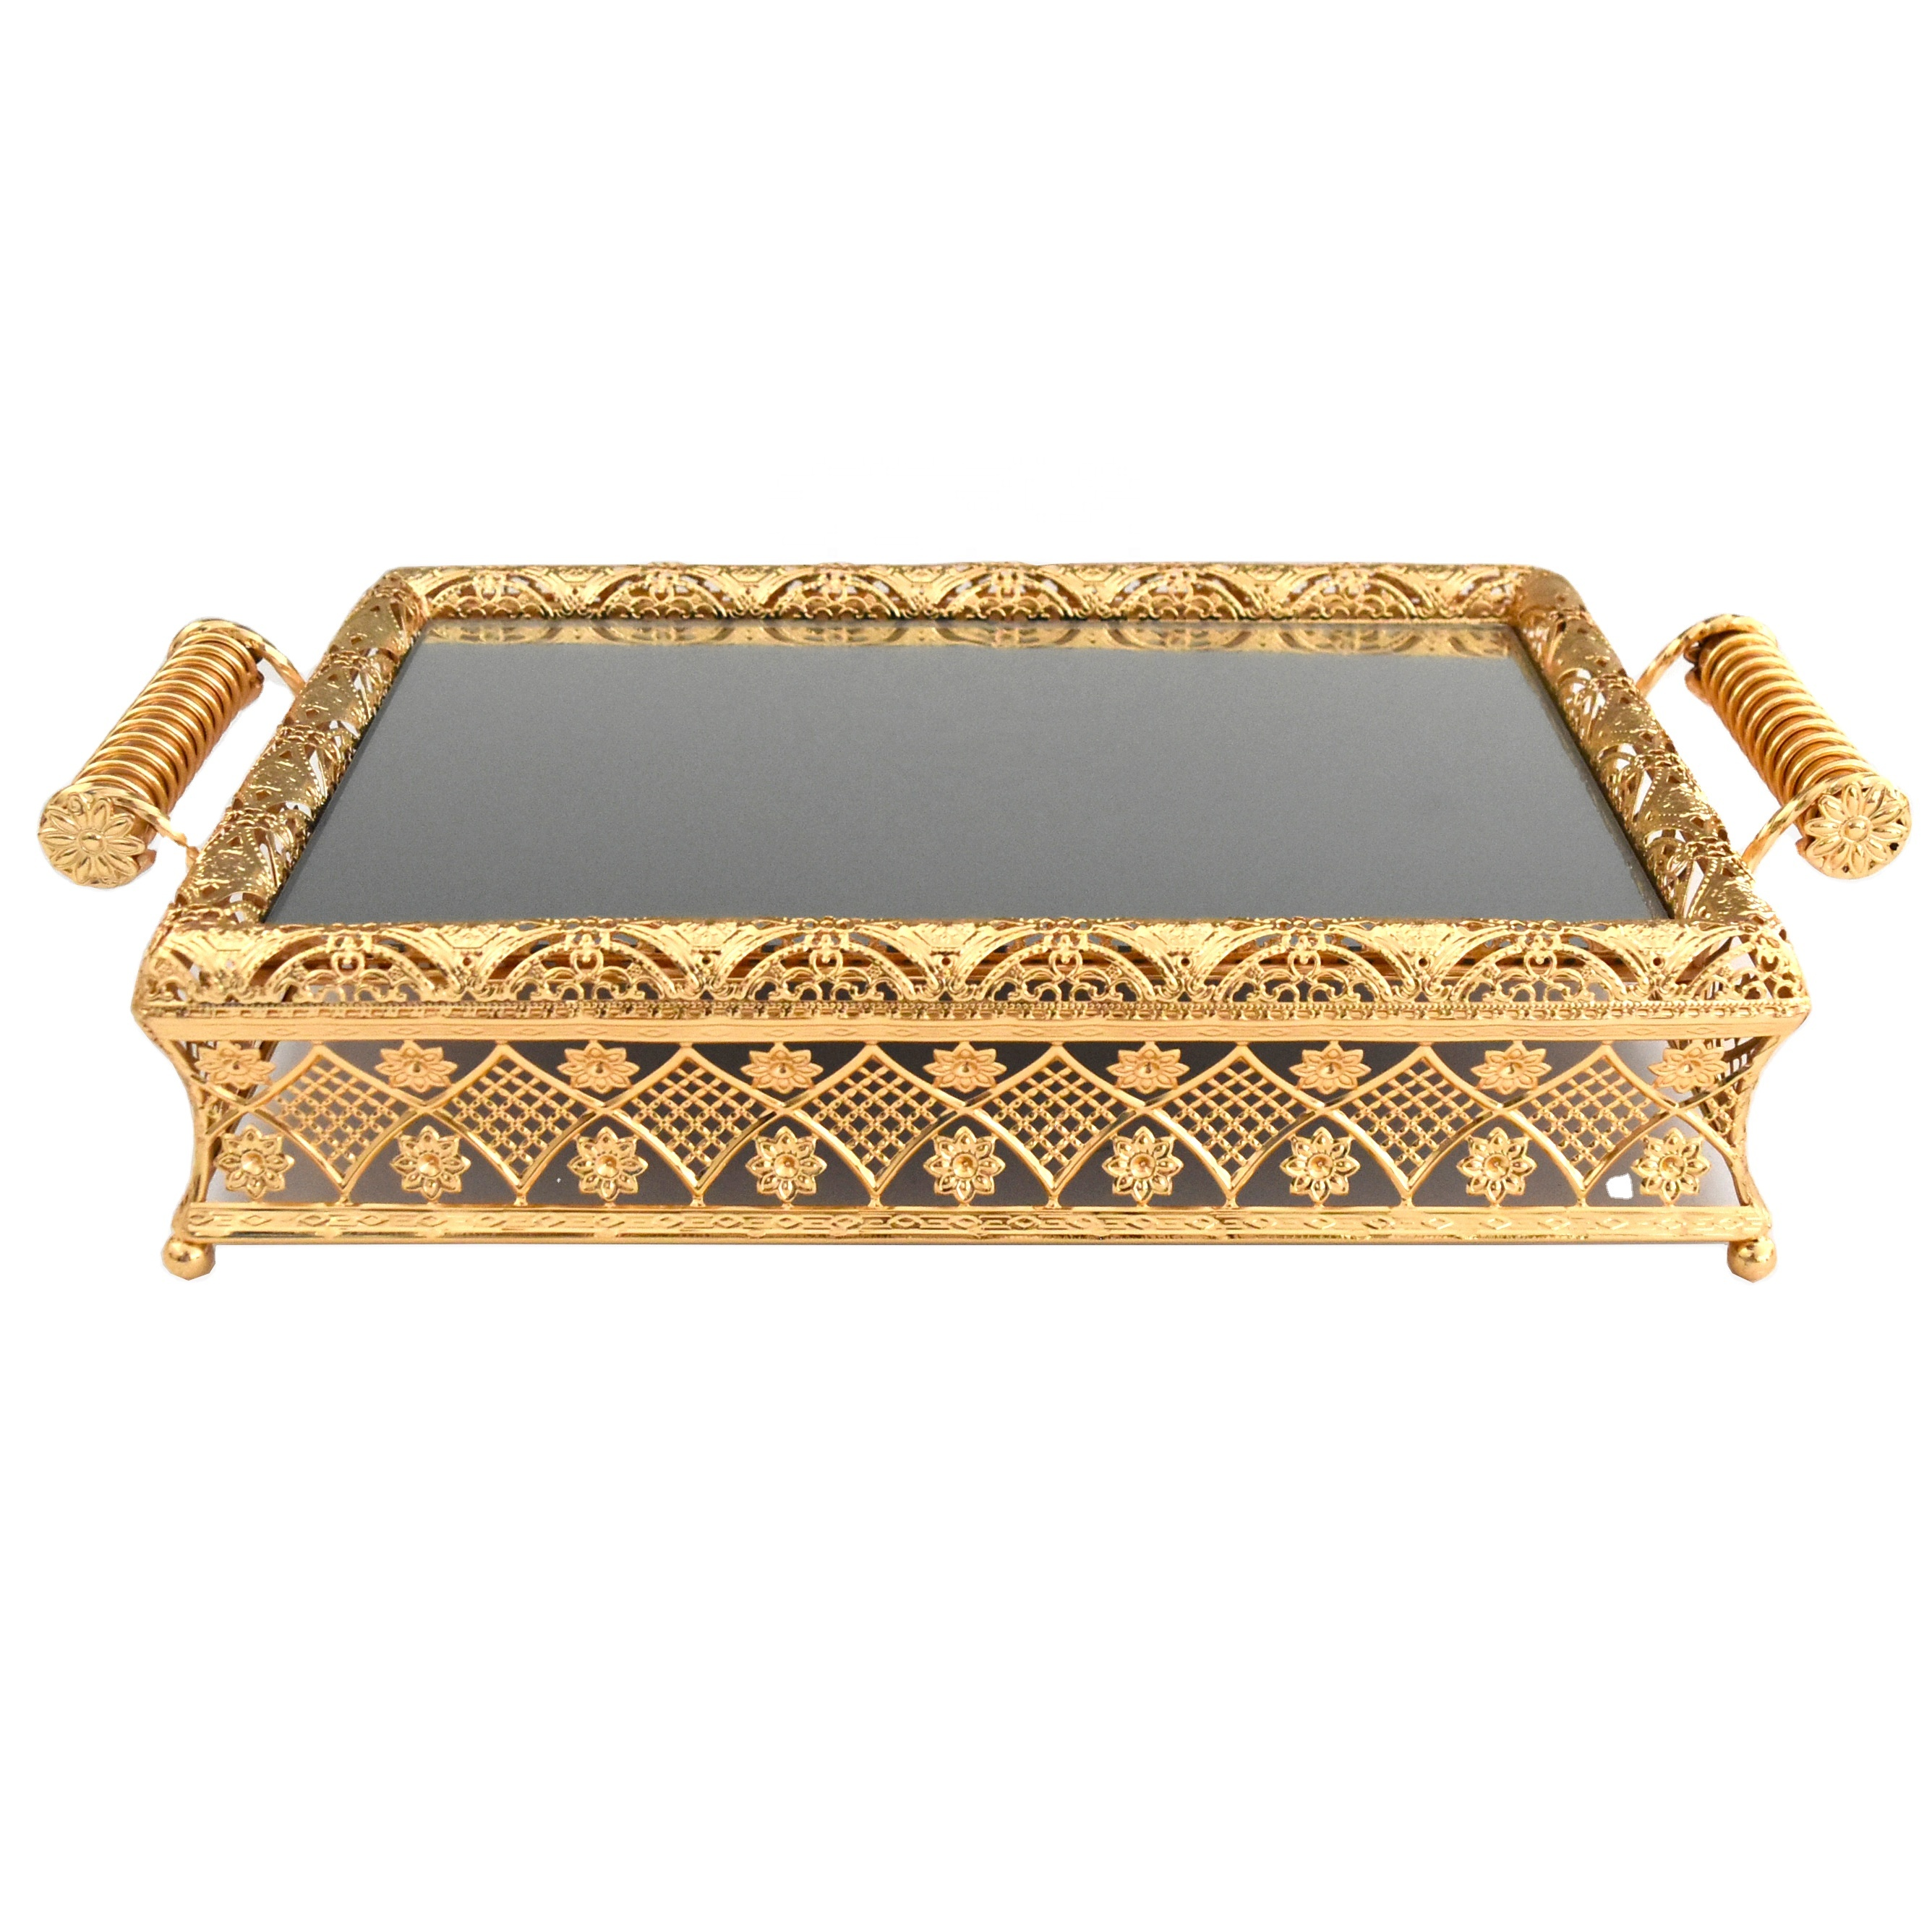 Metal Gold Plated Home Decorative Mirror Fruit Serving Tray With Handle Buy Silver Plated Serving Tray With Handles Metal Mirror Fruit Serving Tray Decorative Metal Trays Product On Alibaba Com